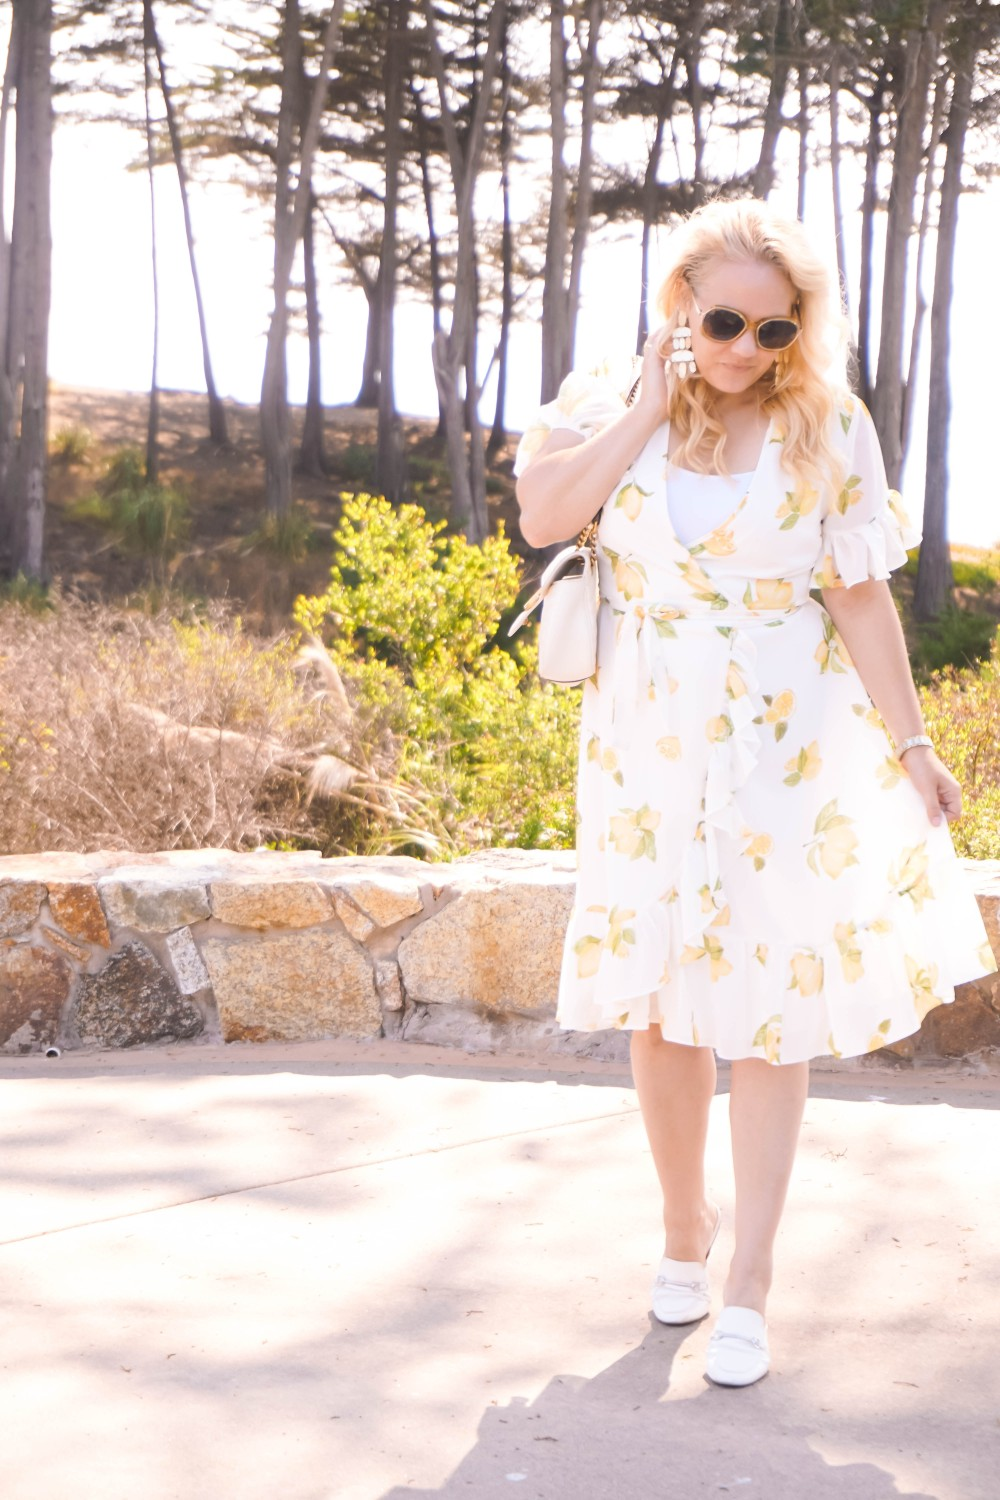 Rachel Parcell Collection Lemon Wrap Dress, Lemon Print Dress, Summer Style, Outfit Inspiration, Have Need Want